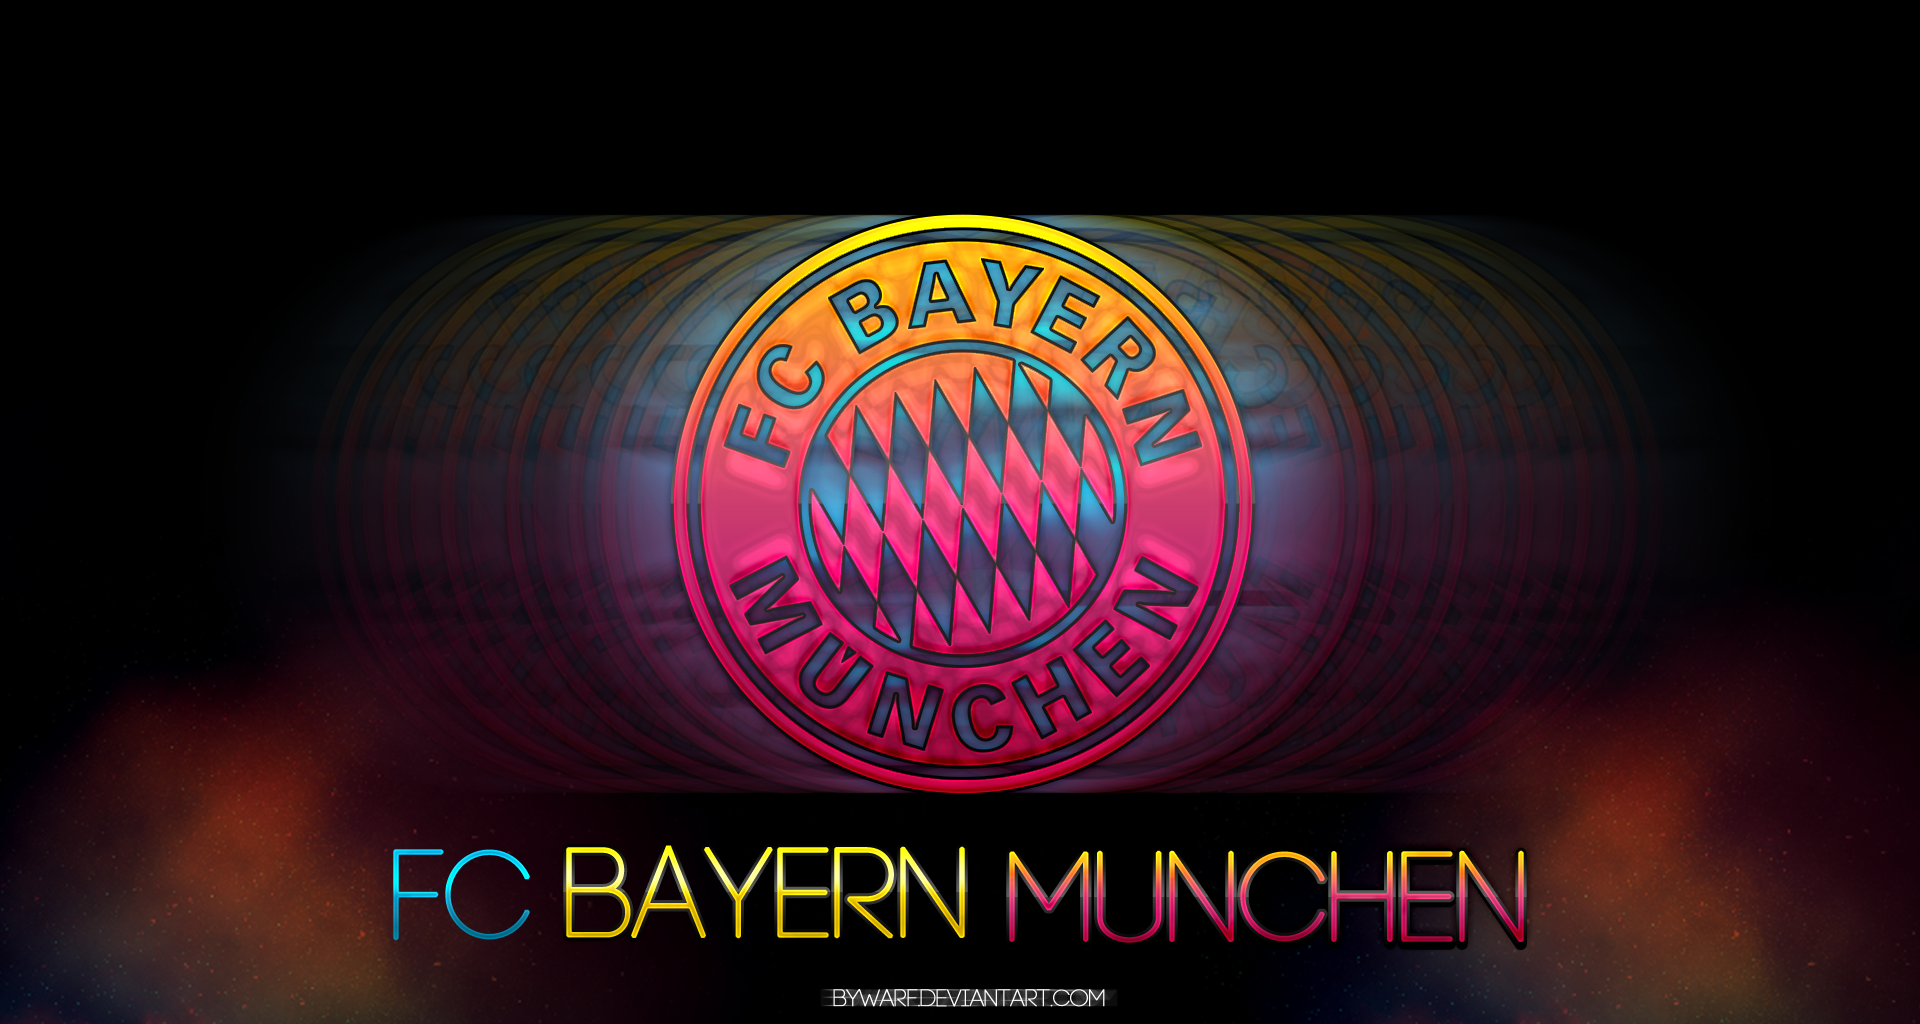 Free Download Fc Bayern Wallpaper Picture Gallery 1920x1024 For Your Desktop Mobile Tablet Explore 99 Fc Bayern Munich Wallpapers Fc Bayern Munich Wallpaper Fc Bayern Munich Wallpapers Fc Bayern